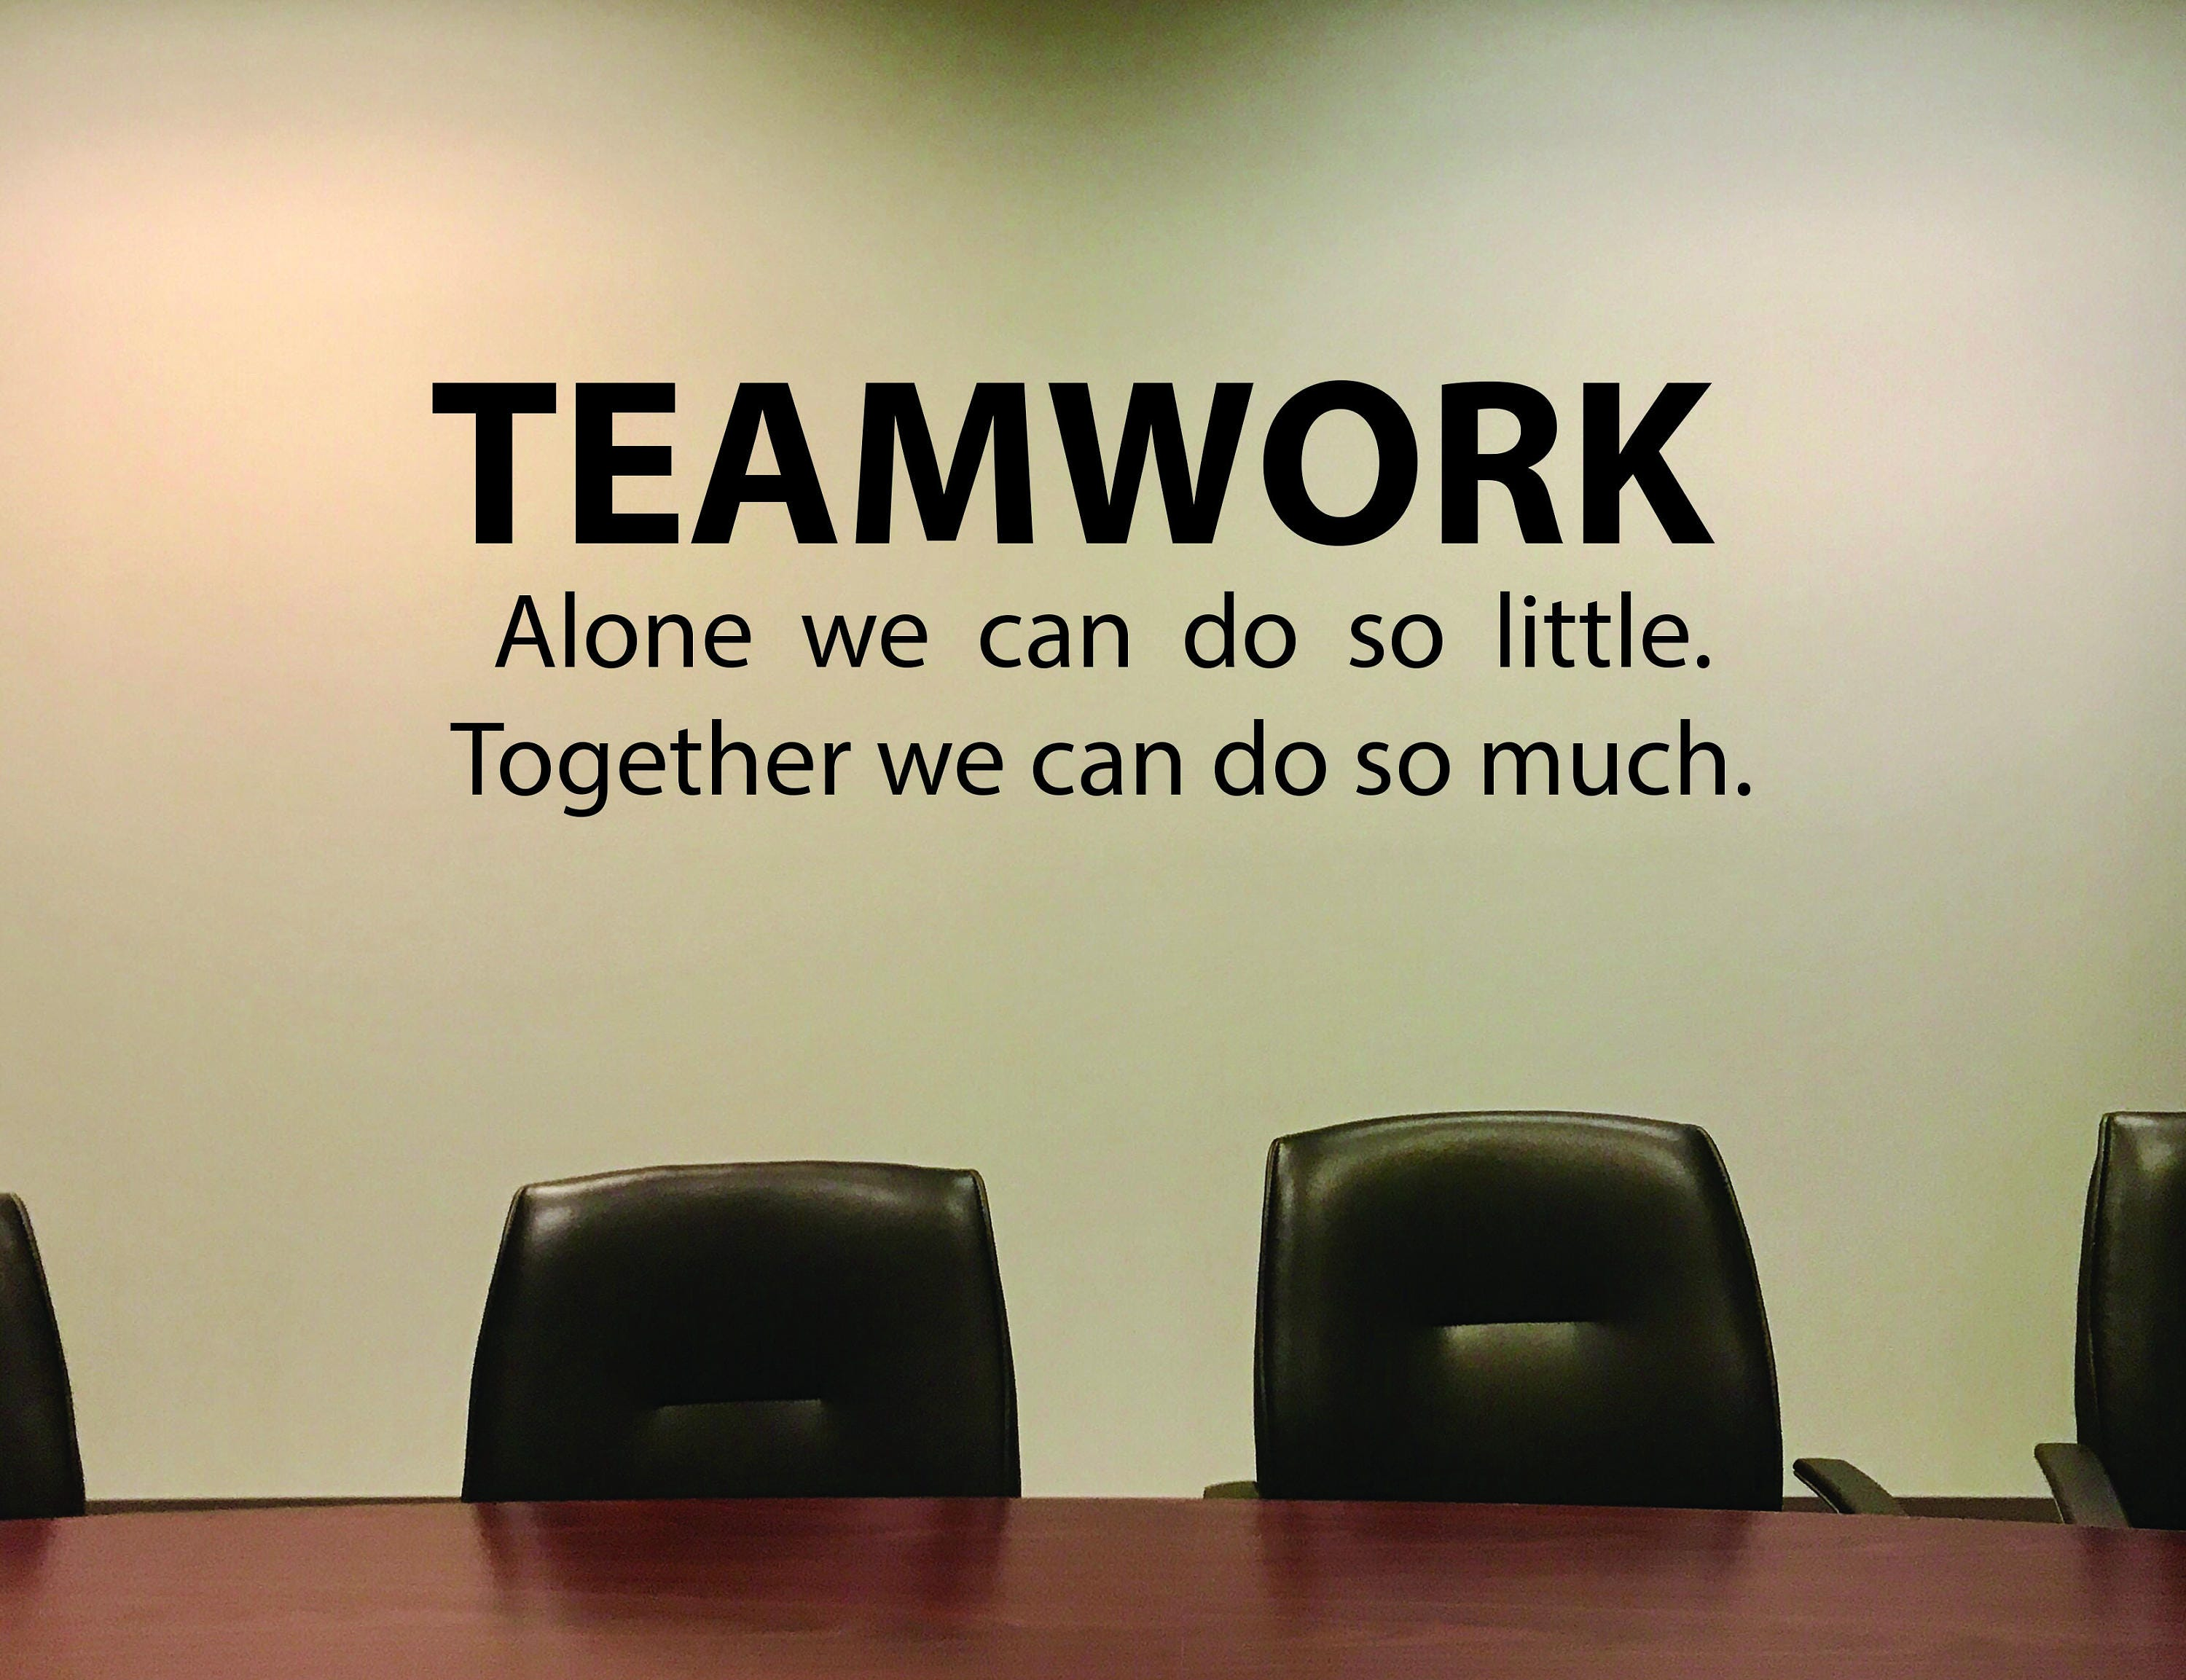 Office Sign Teamwork Quote Decal Office Wall Decor Teamwork Alone